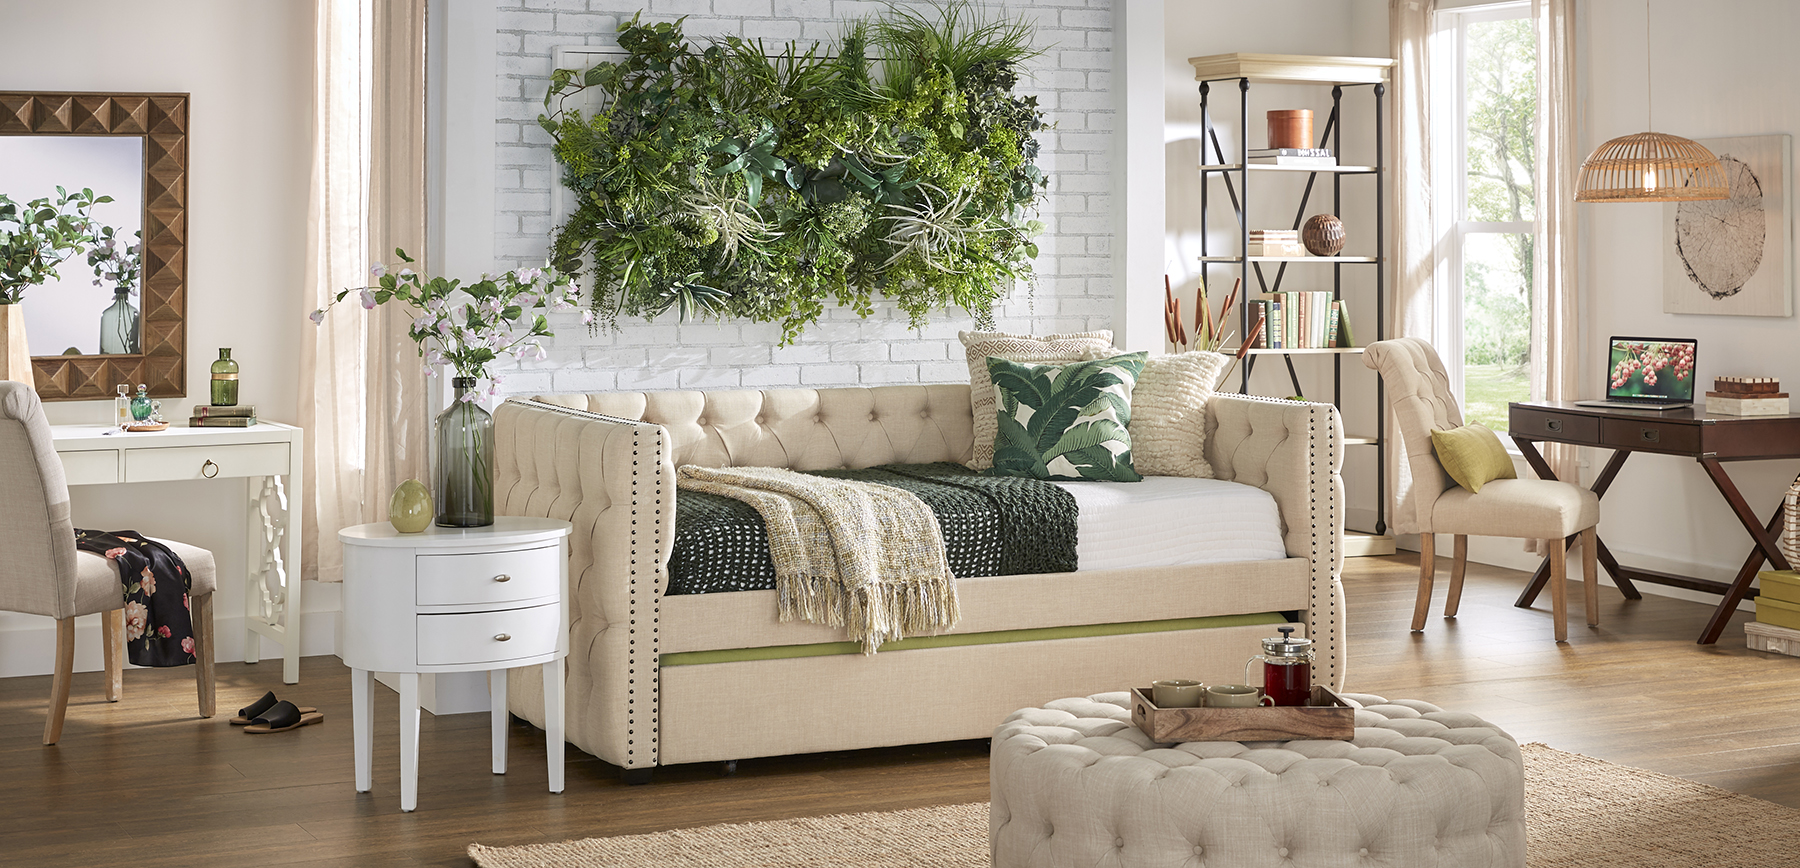 This image showcases the home decor trends of 2021. We feature our beige linen daybed, beige linen cocktail ottoman, white end table, white desk, espresso desk, and an antique white bookcase. This room also features natural elements like a faux greenery wall, wicker pendant light, sisal rug, and a reclaimed wood-framed mirror.